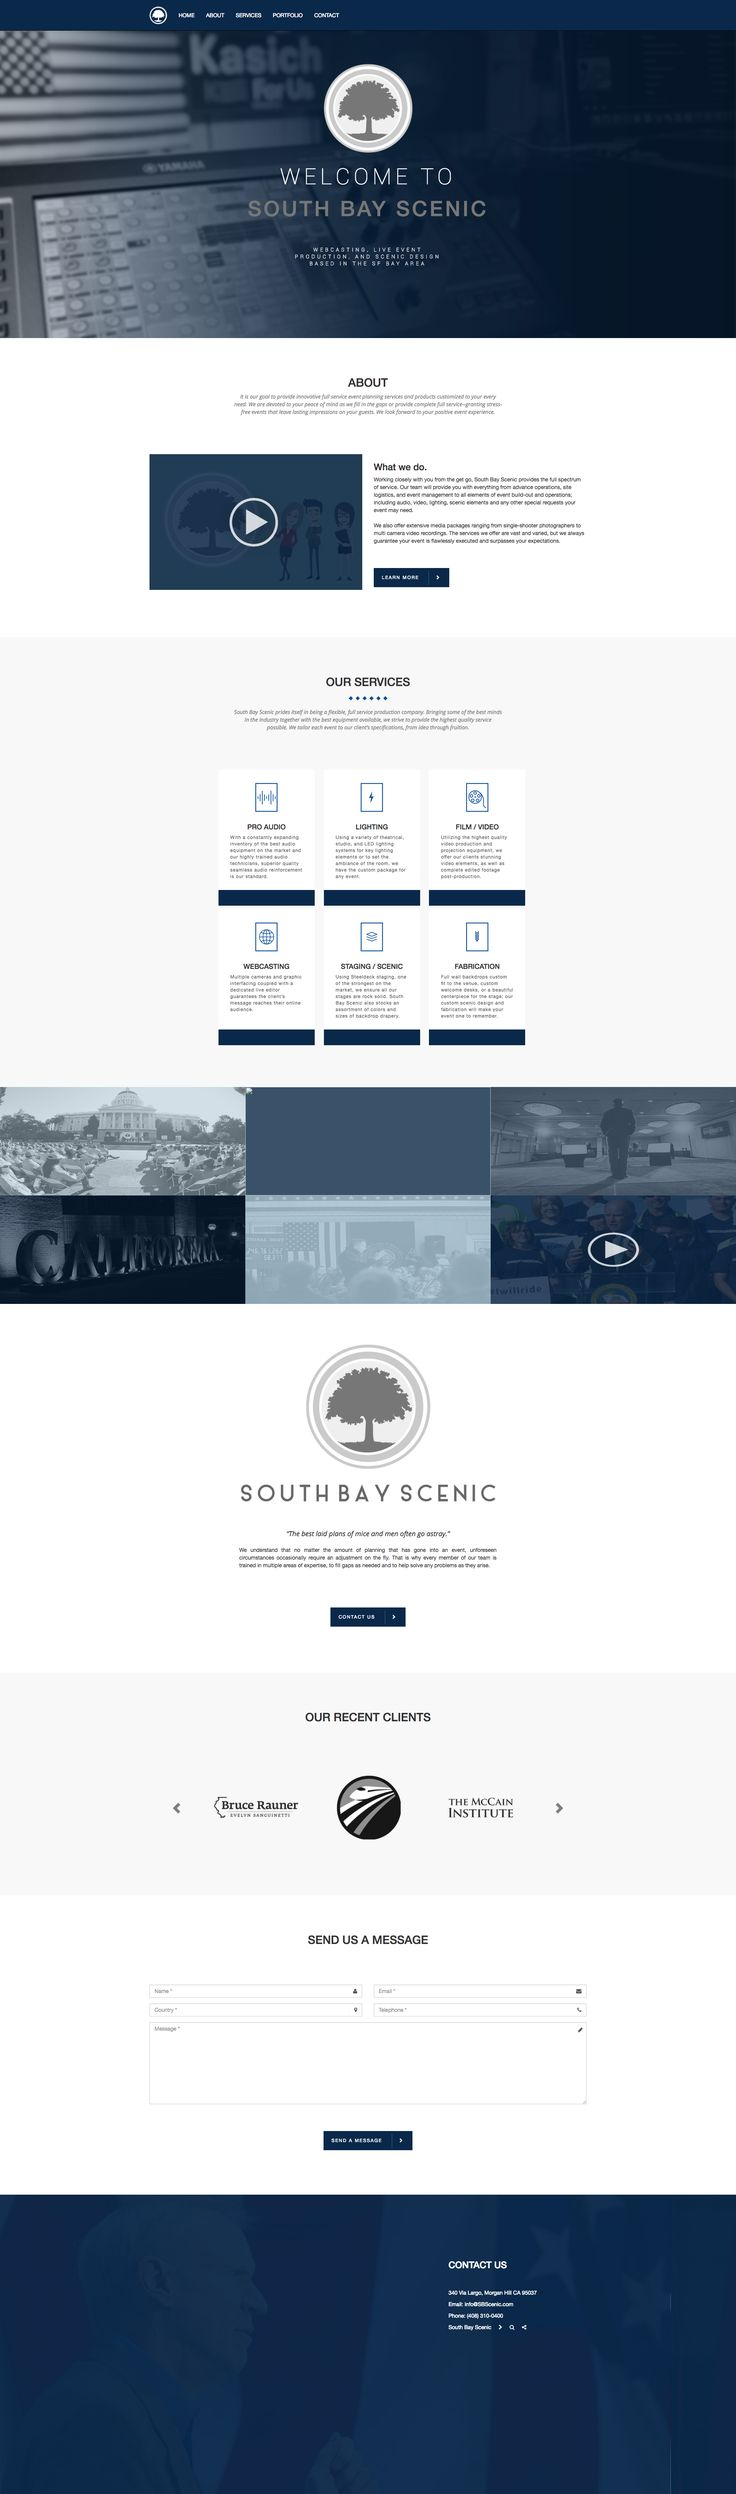 South bay scenic landing page. Design by Jumpanzee.